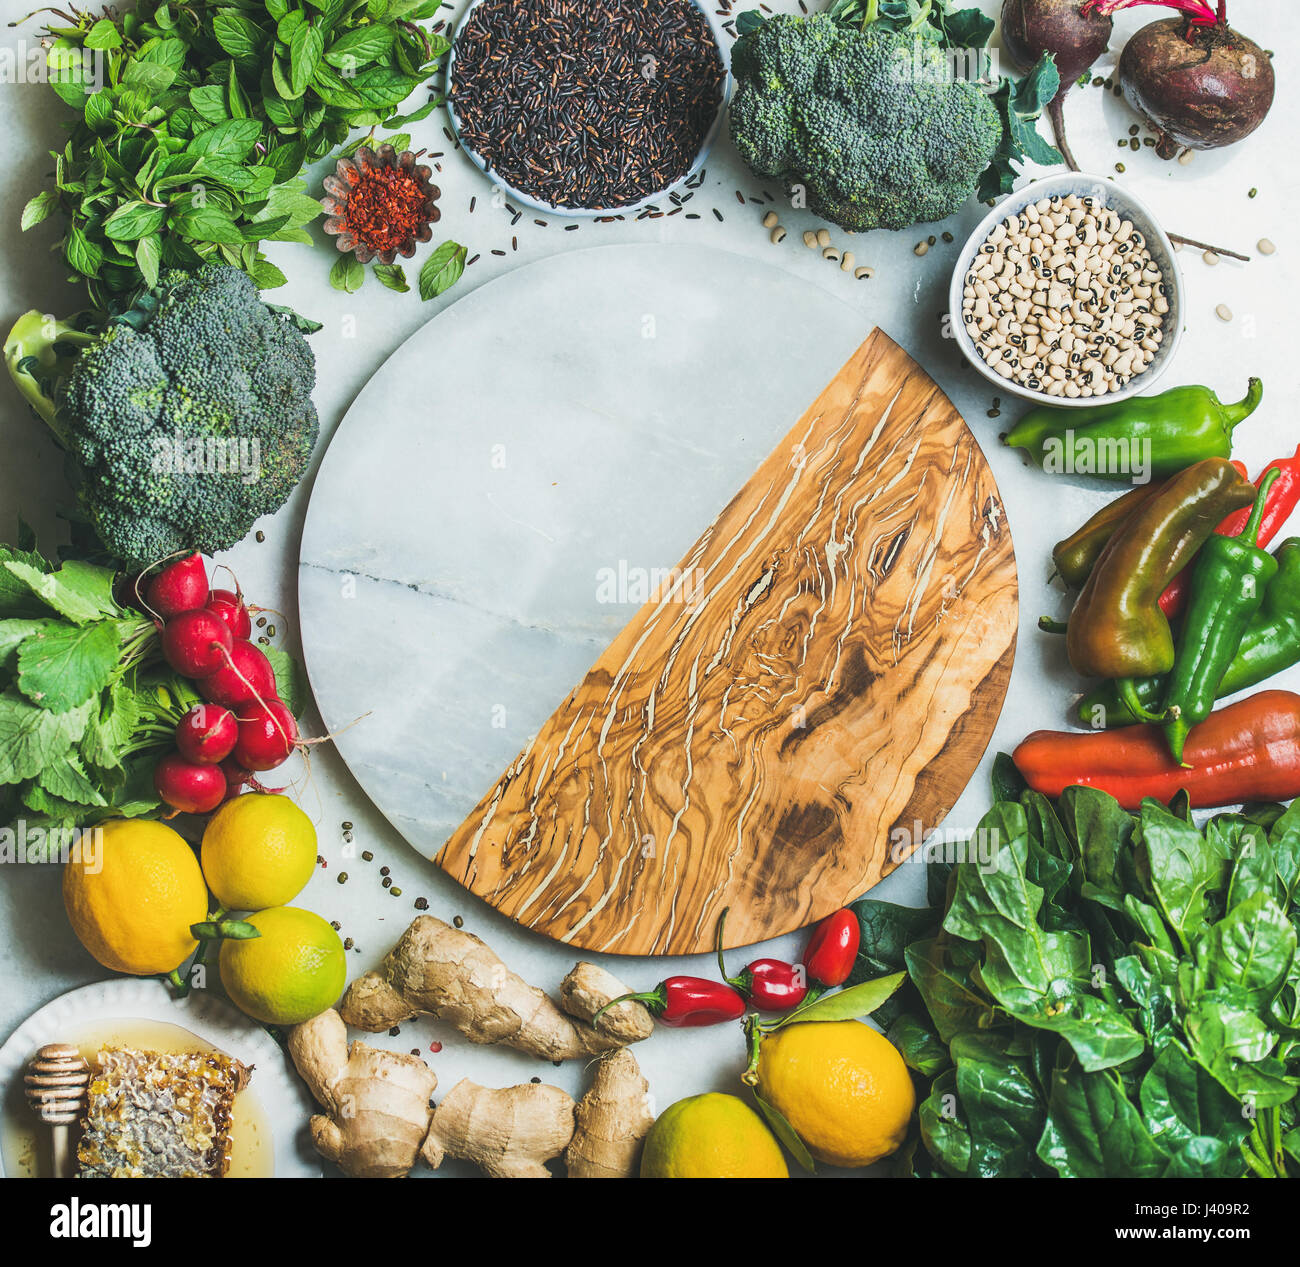 Clean eating healthy cooking ingredients with copy space in center - Stock Image